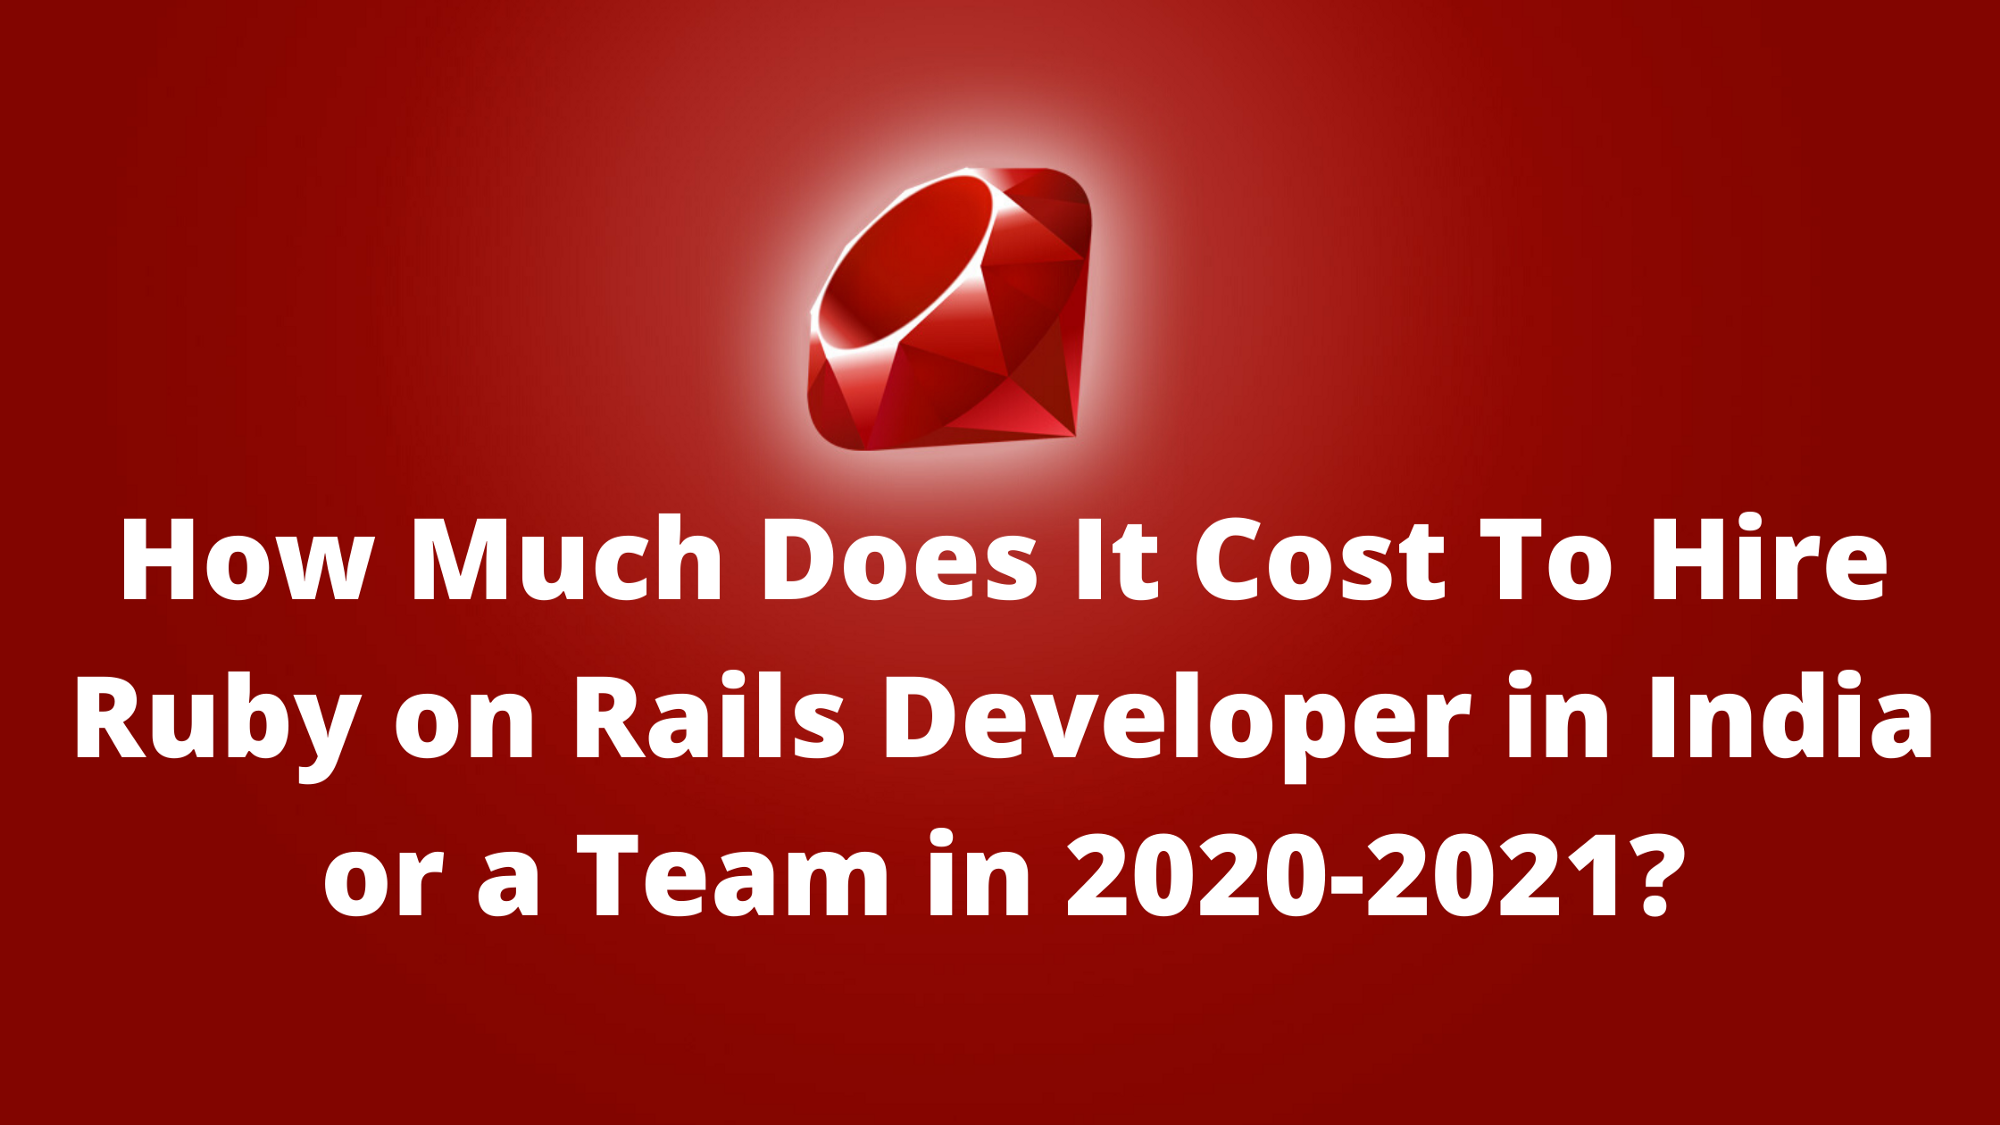 Cost to hire ruby on rails developer in india or team